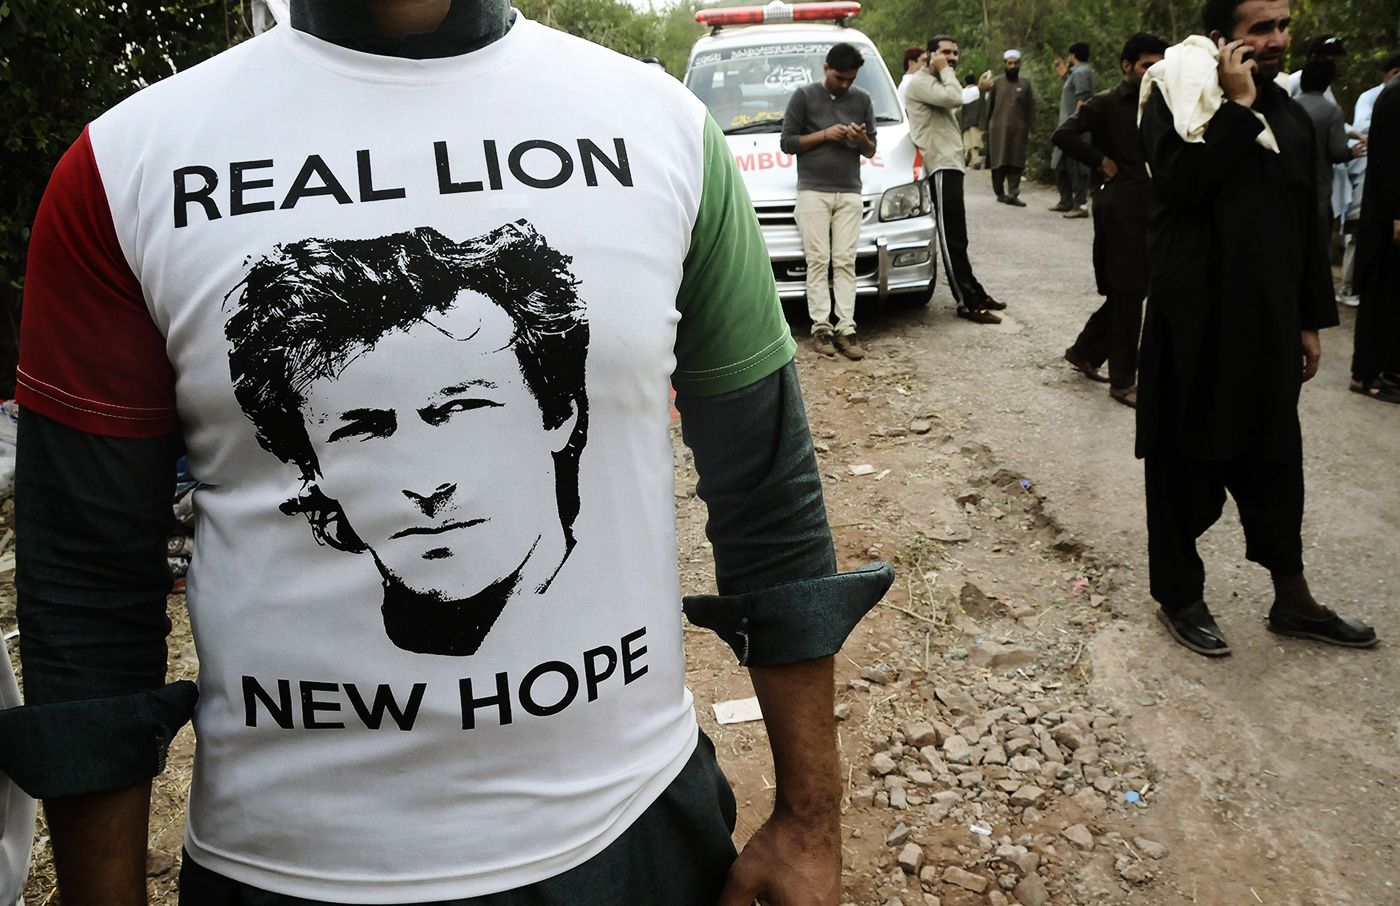 From the fringes of politics, Imran fought his way to the centre of power, but at what cost to his supposed ideals and ultimately to Pakistan?